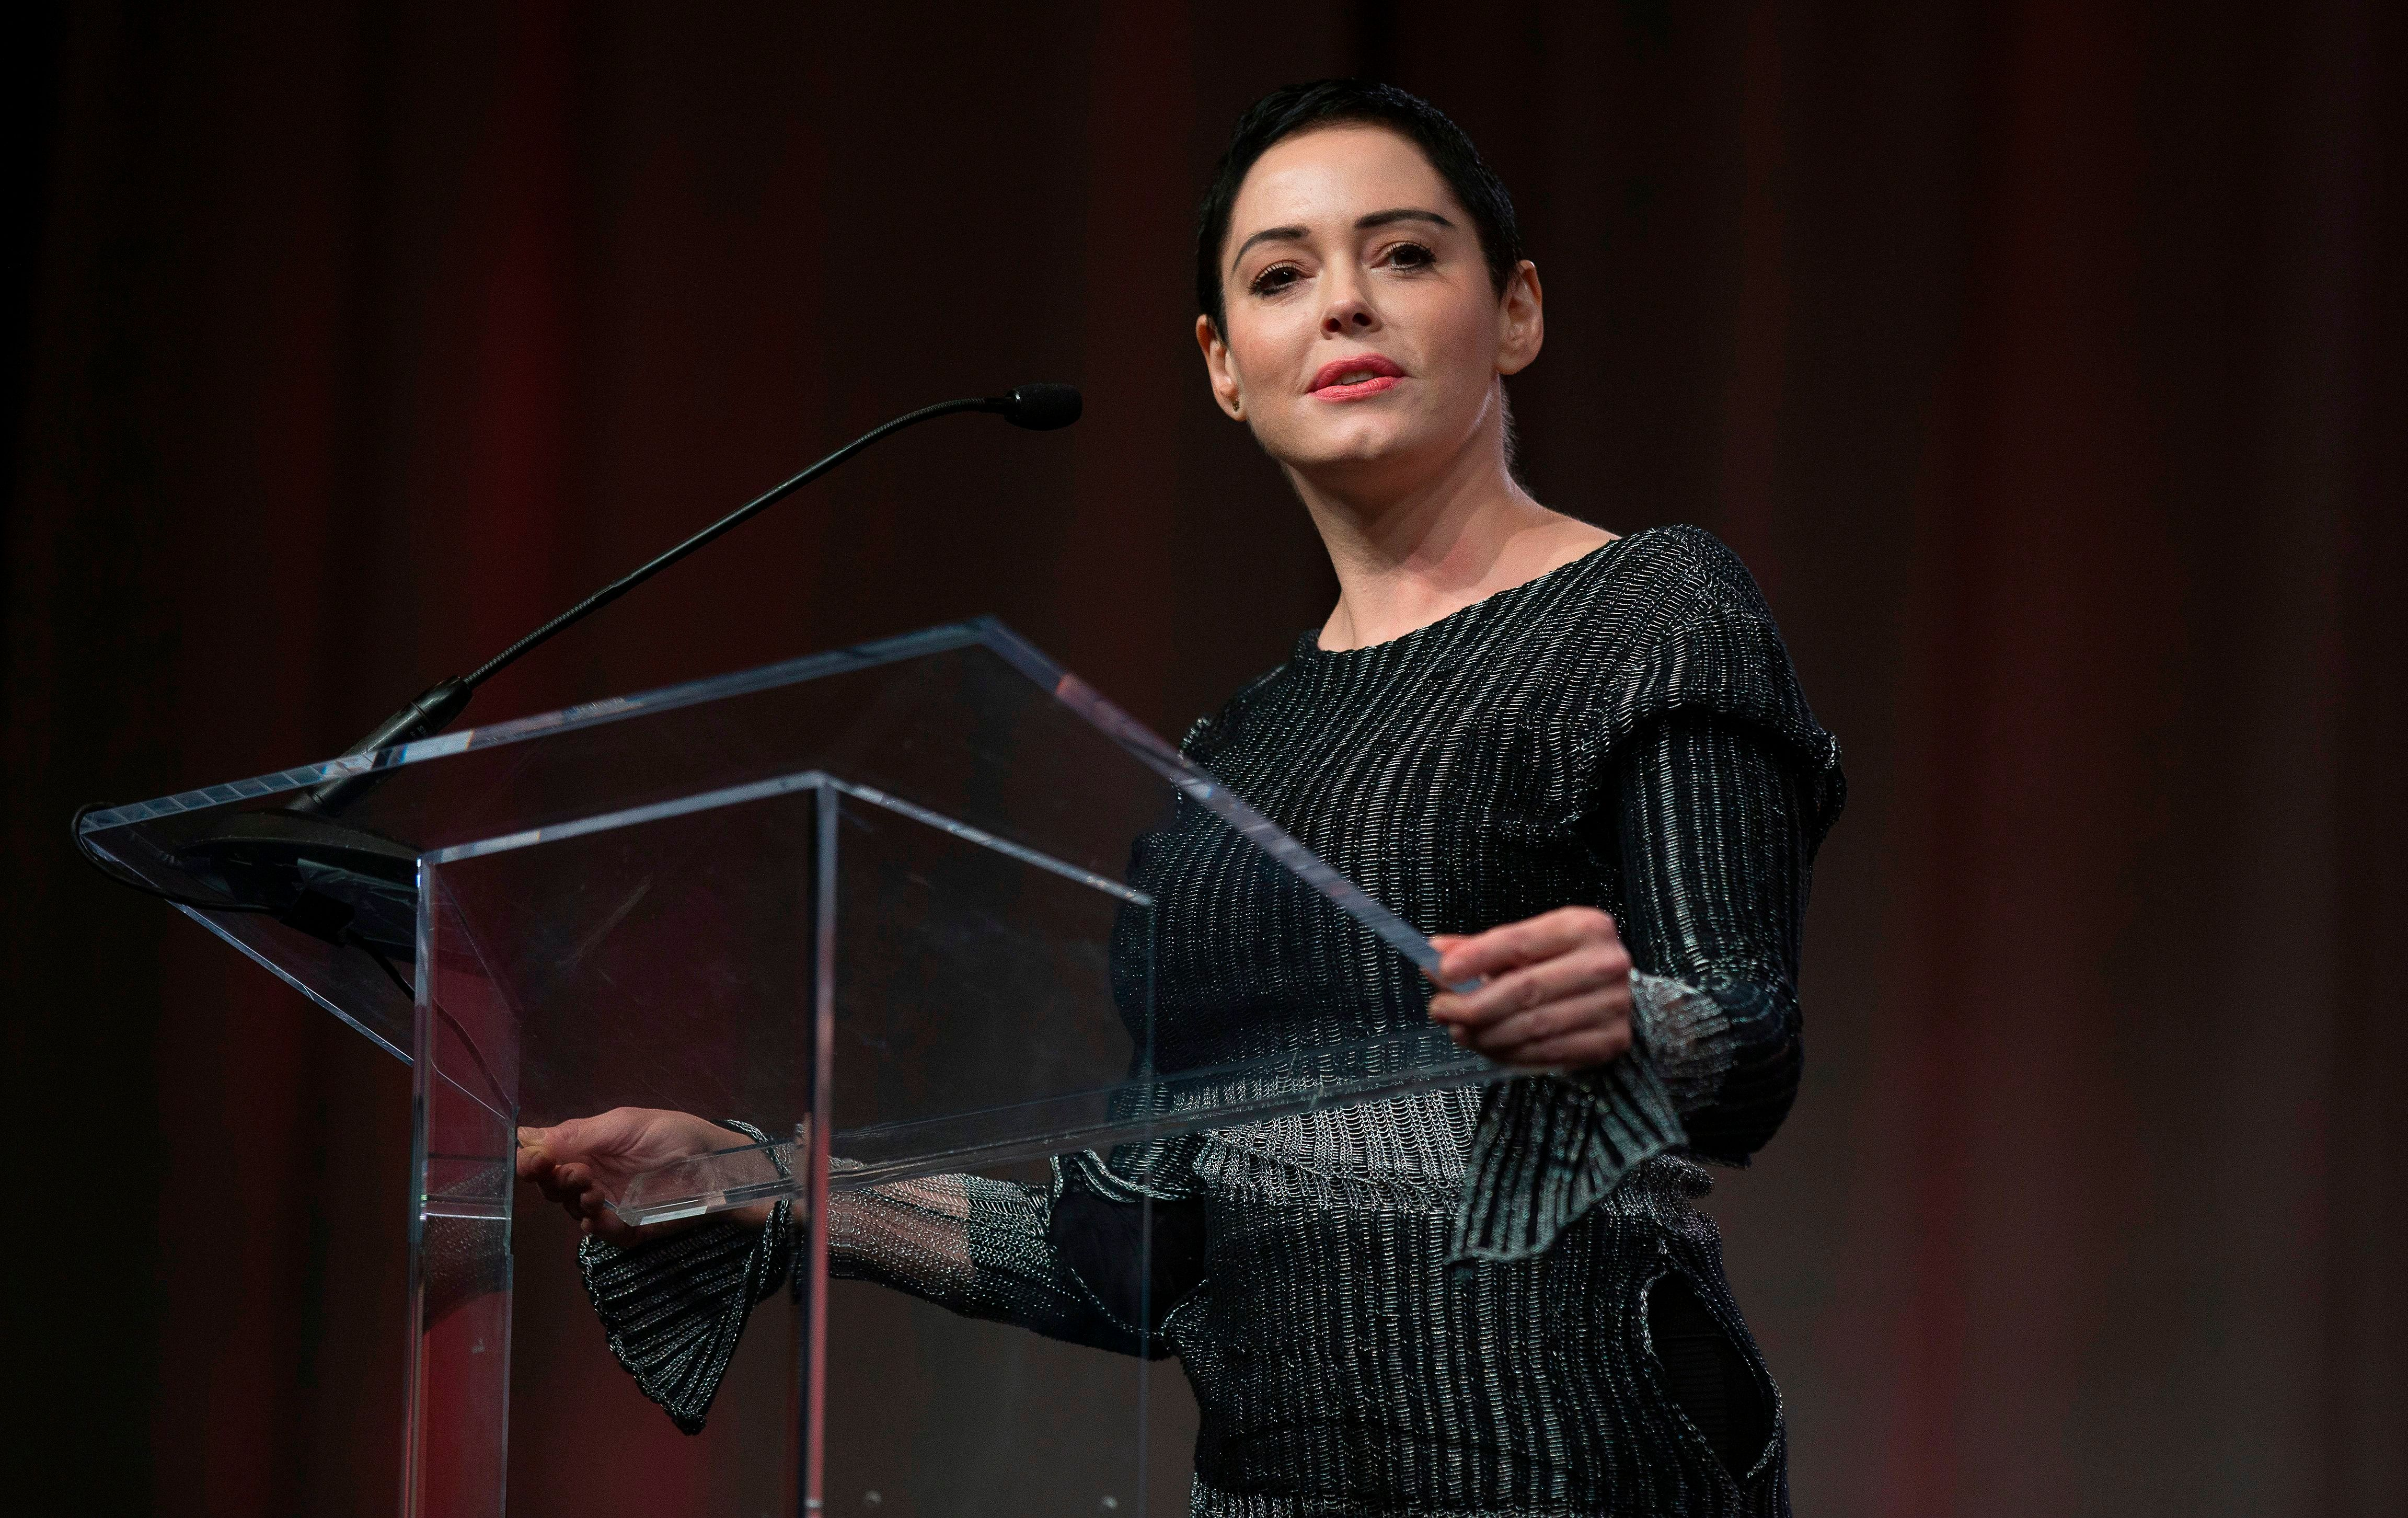 Rose McGowan Blasts 'Hollywood Fakery' In Response To Golden Globes Black Dress